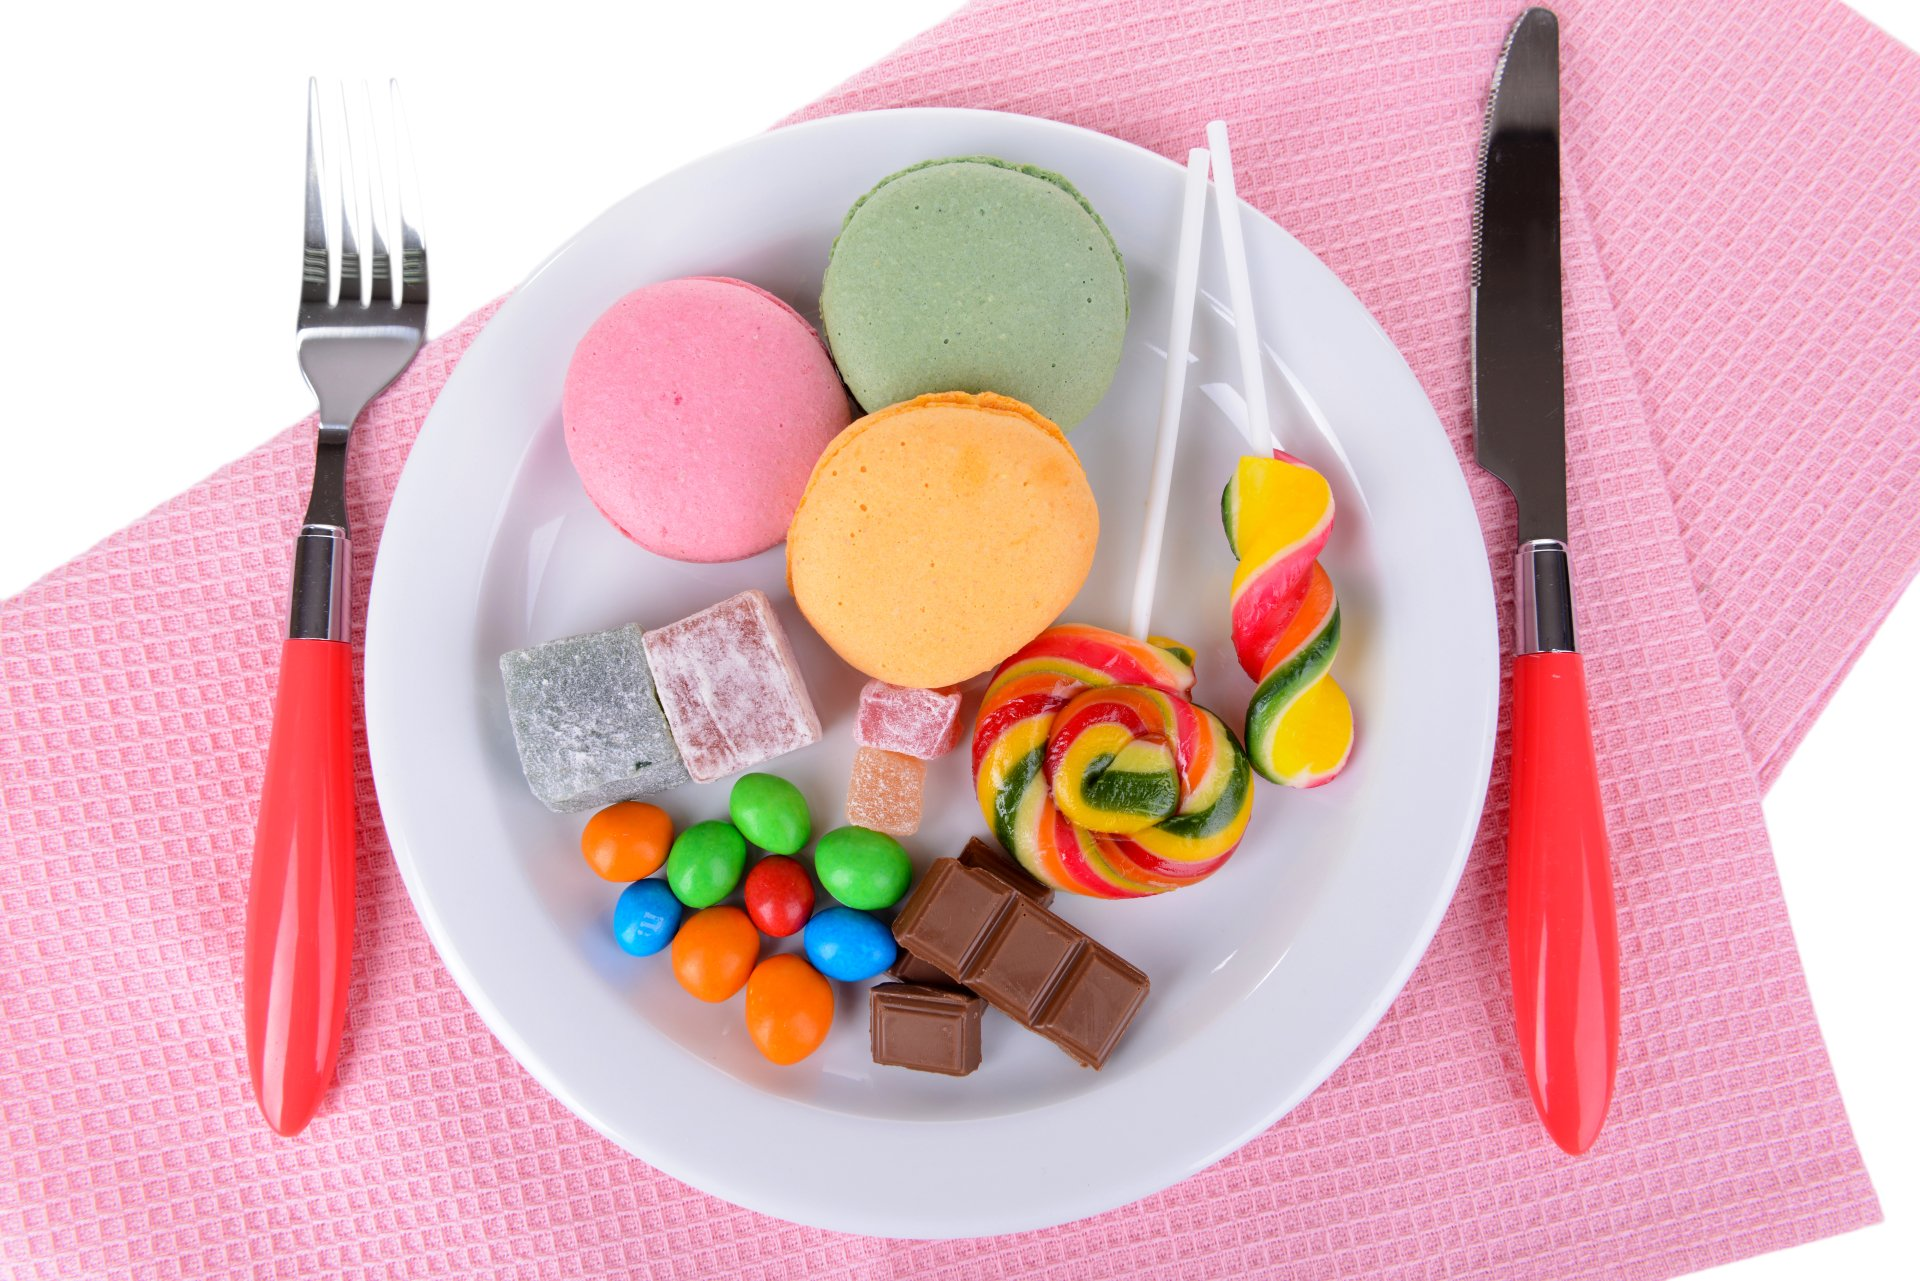 Food - Sweets  Chocolate Candy Lollipop Macaron Colorful Wallpaper